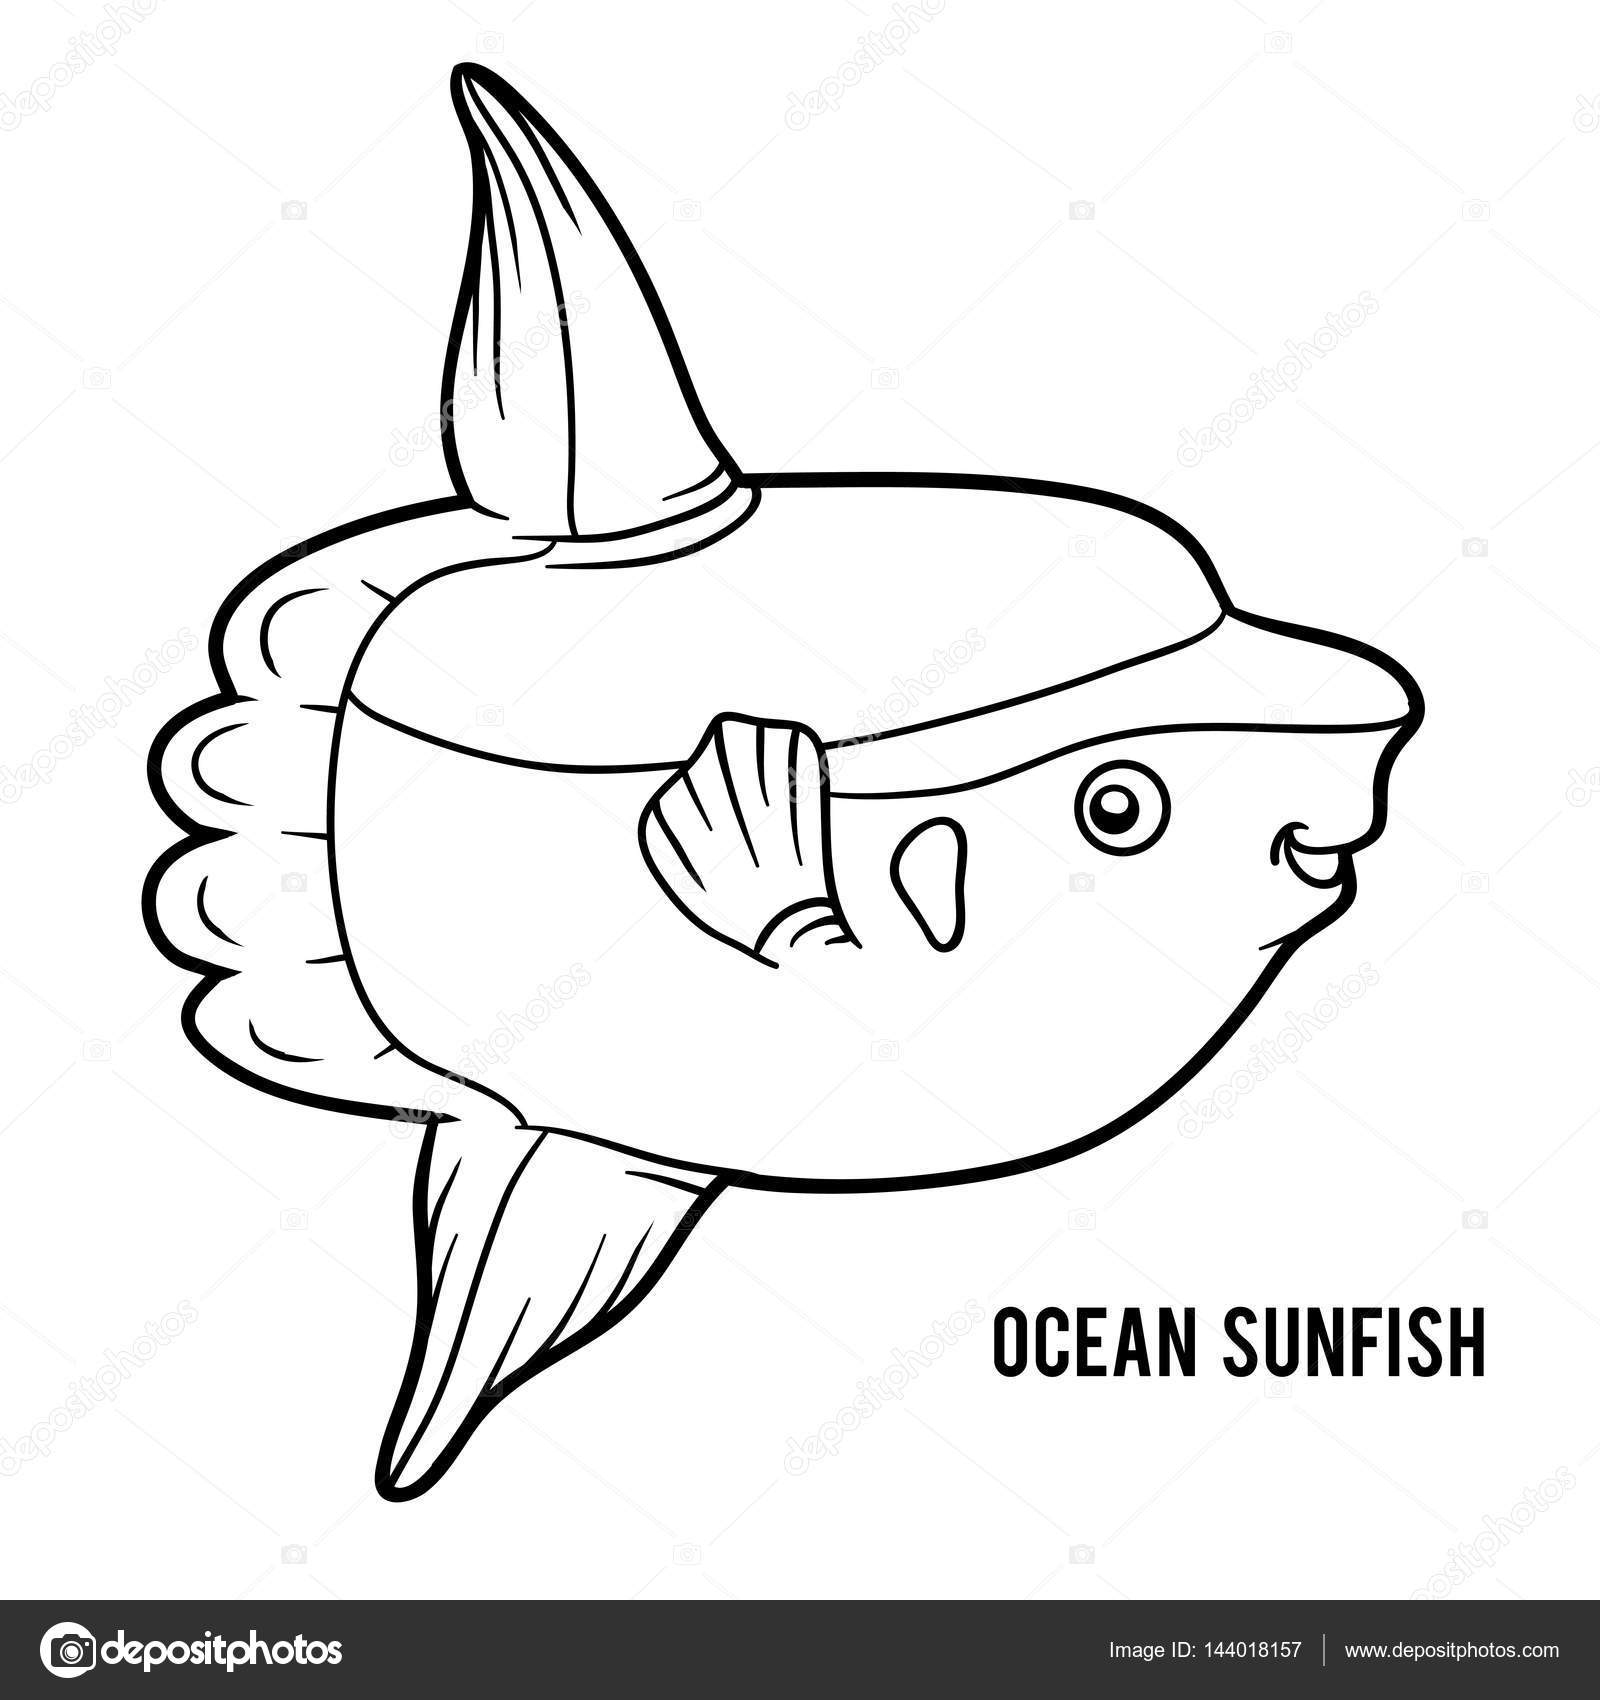 coloring book for children ocean sunfish vector by ksenya_savva